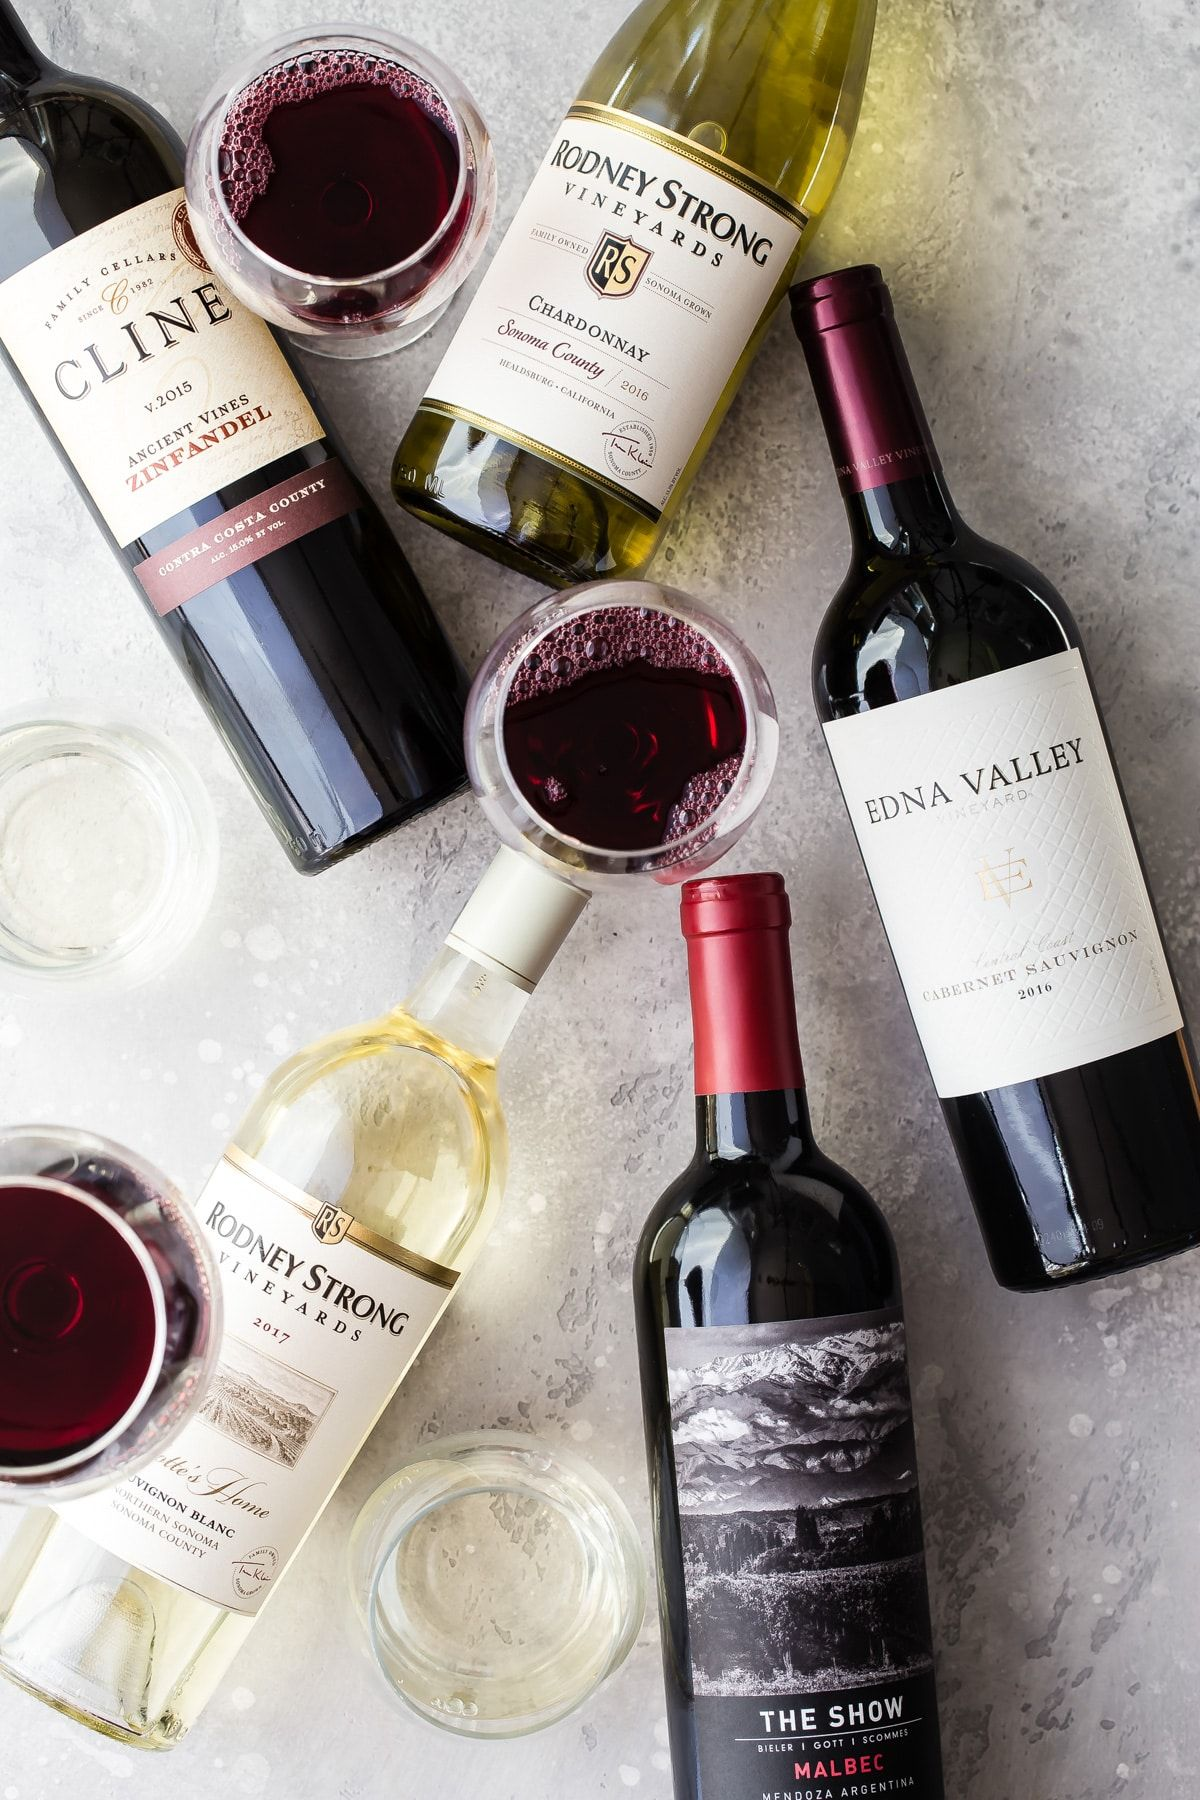 Check out my five awesome wine choices for the holidays! These are all under $15 and pair well with so many different foods! #wine #holidays